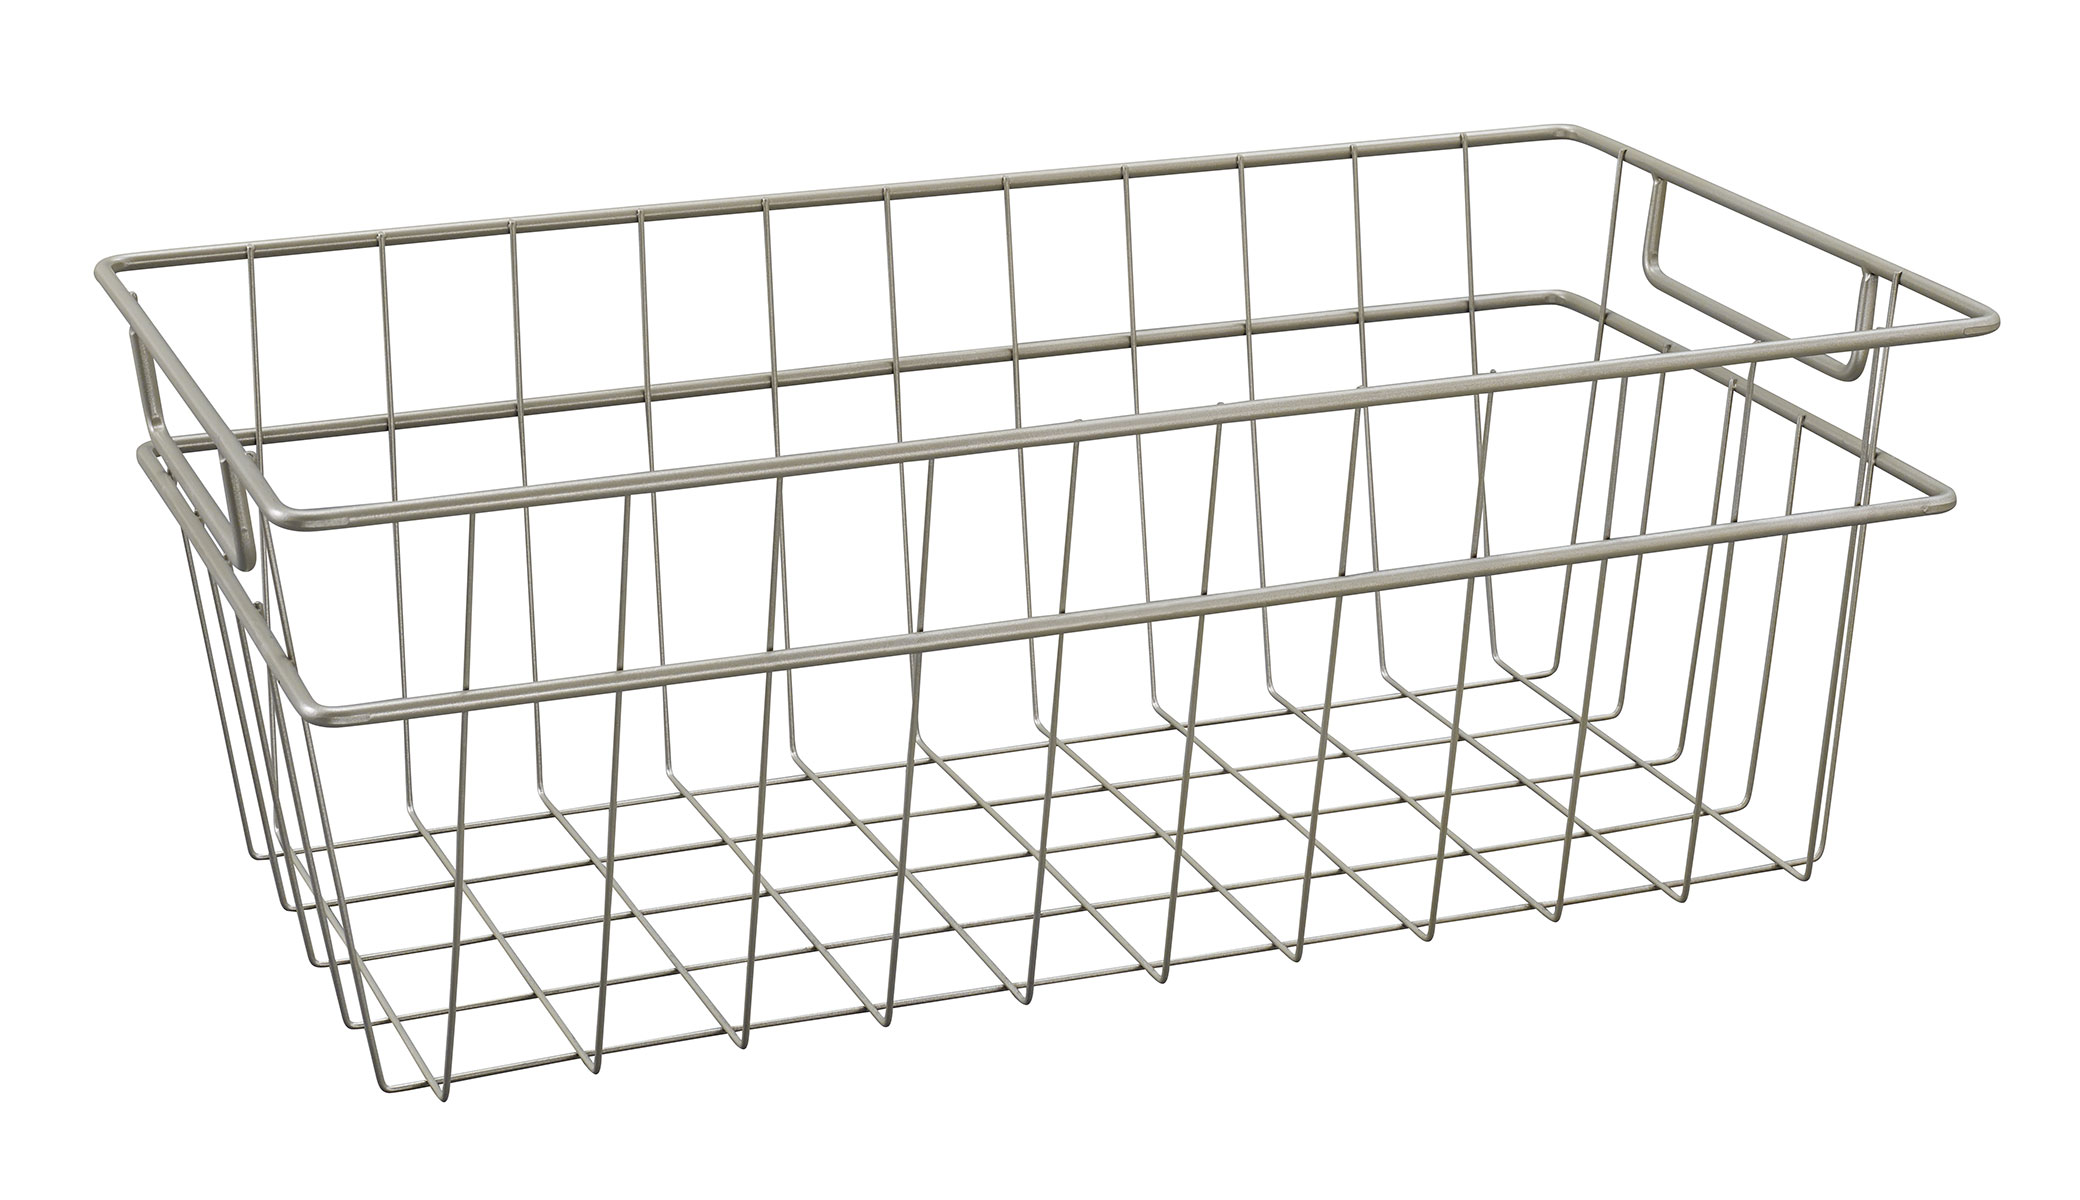 Wire Storage Baskets. Showing 40 of results that match your query. Search Product Result. InterDesign Classico Open Wire Large Storage Basket, Matte Satin. Add To Cart. There is a problem adding to cart. Please try again. Product - Spectrum Wire Basket. Product Image. Price $